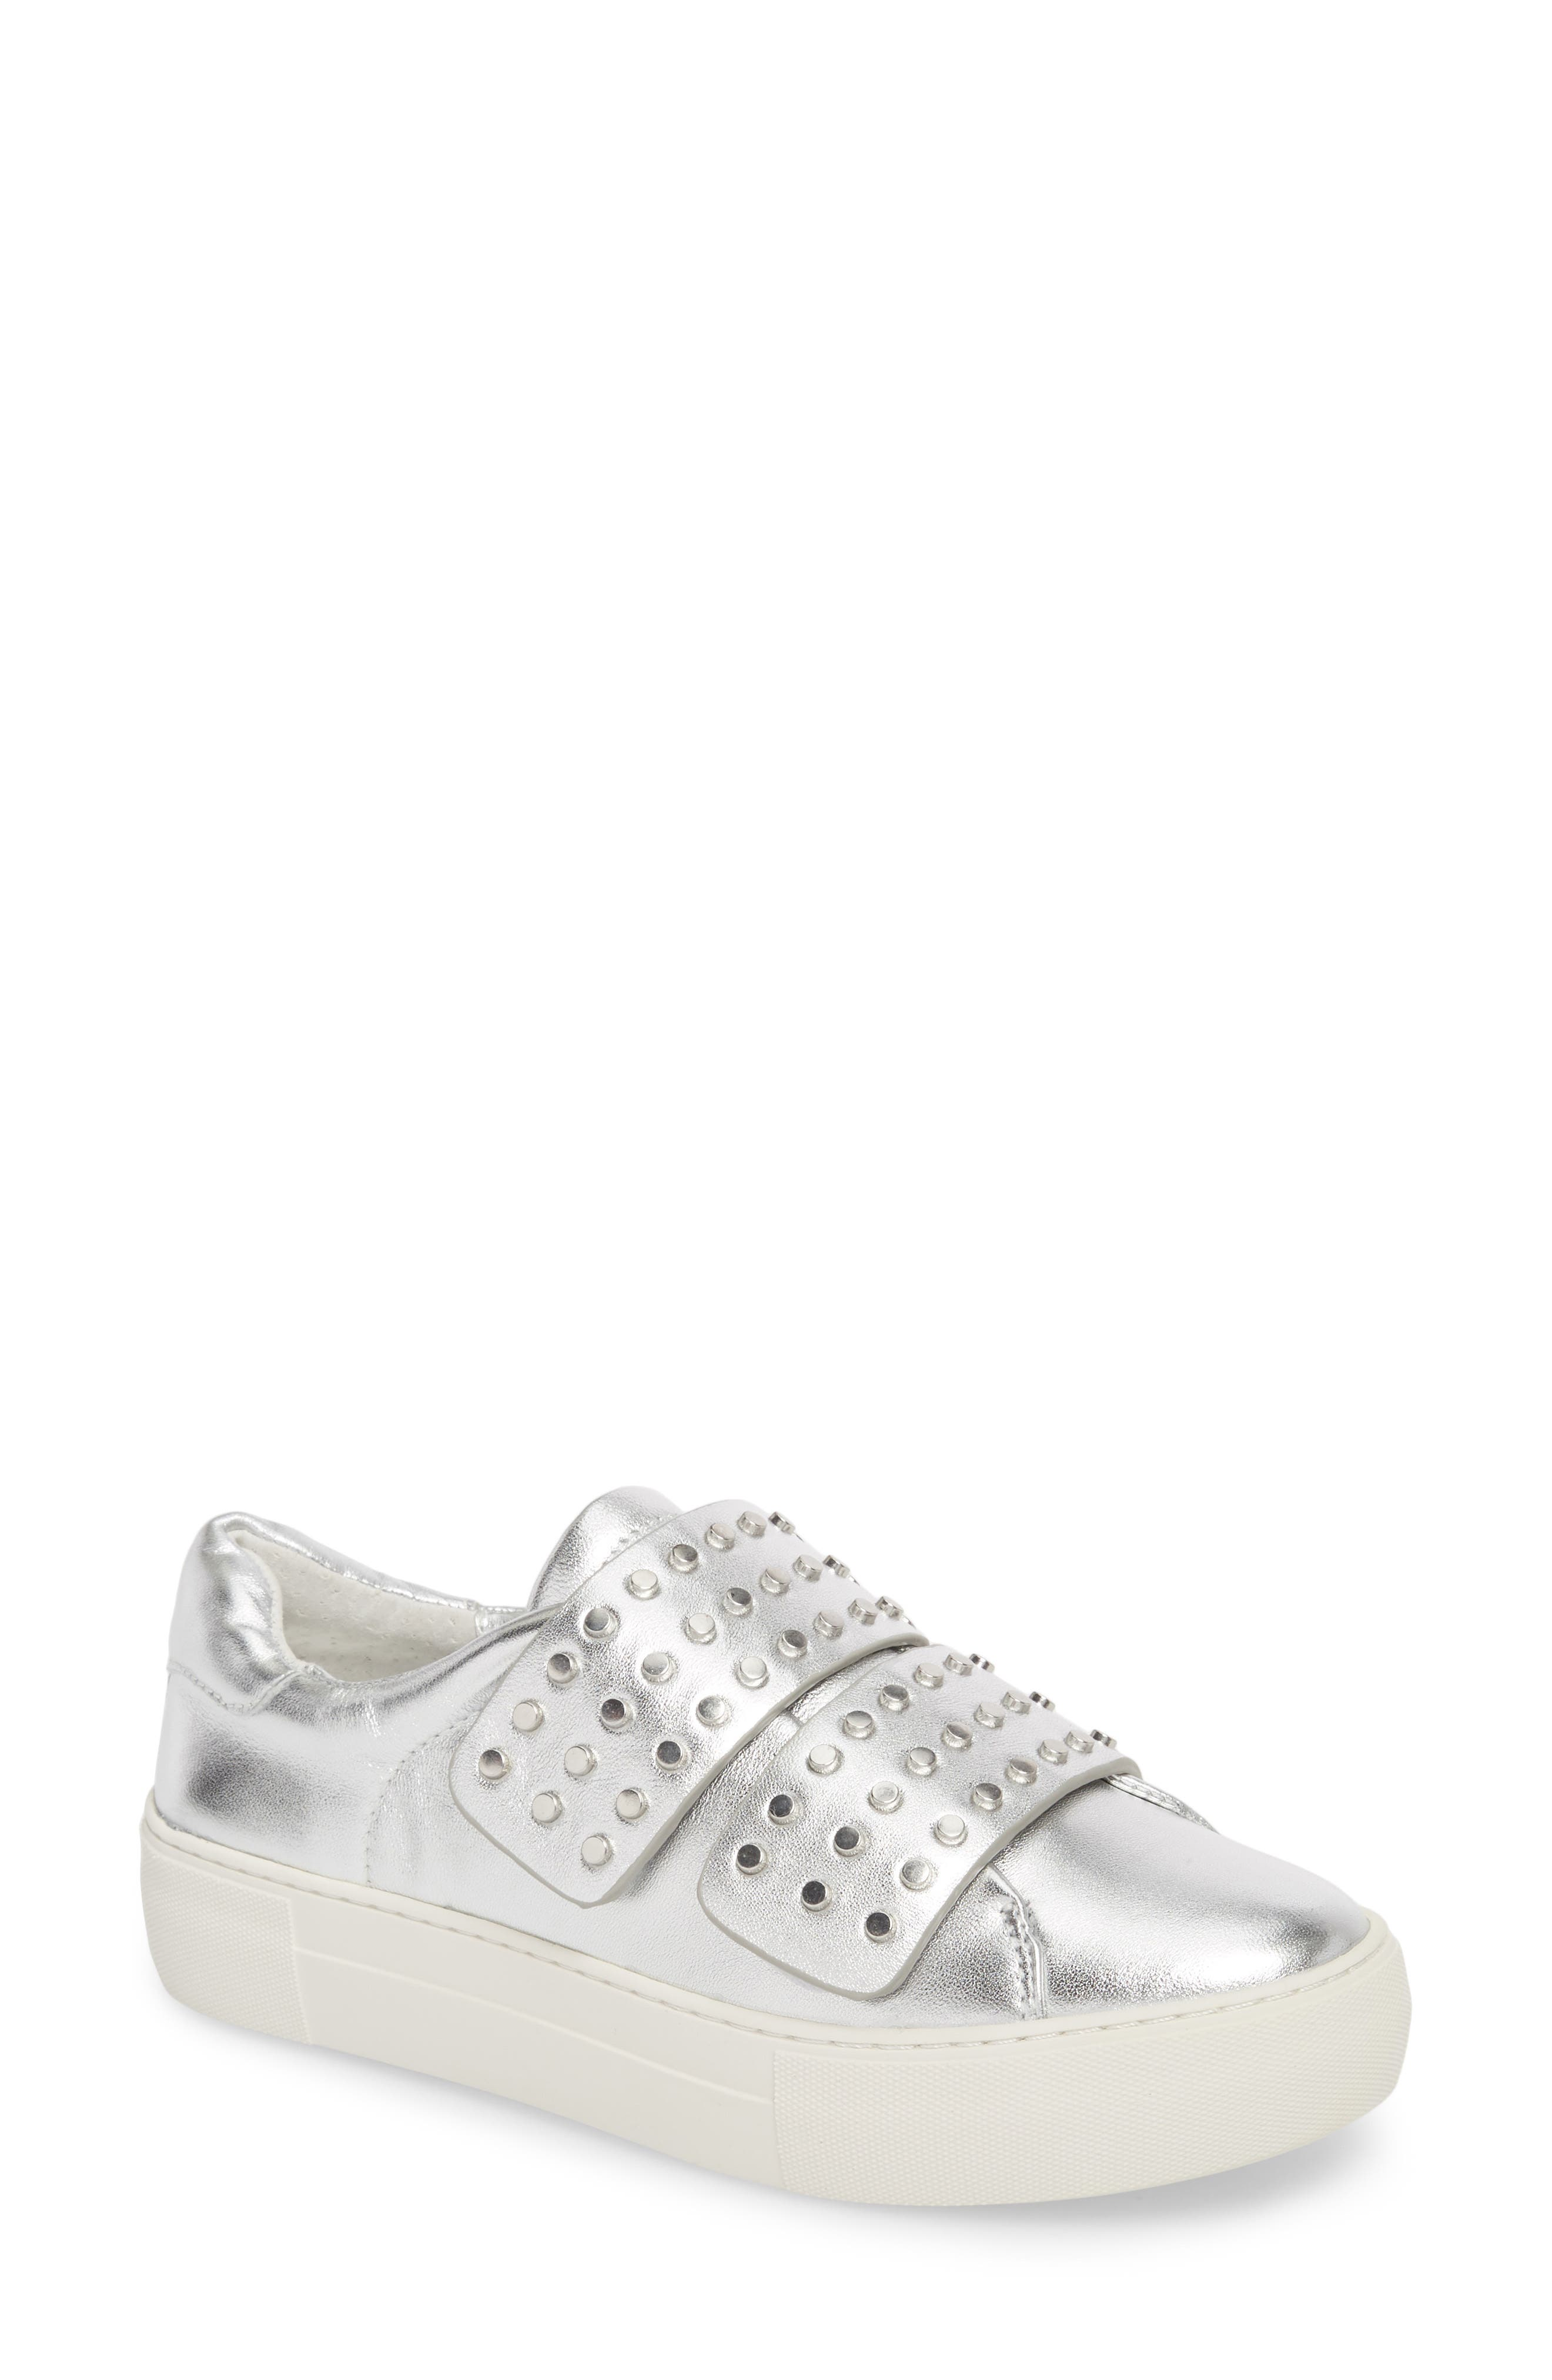 Accent Slip-On Sneaker,                             Main thumbnail 1, color,                             SILVER METALLIC LEATHER